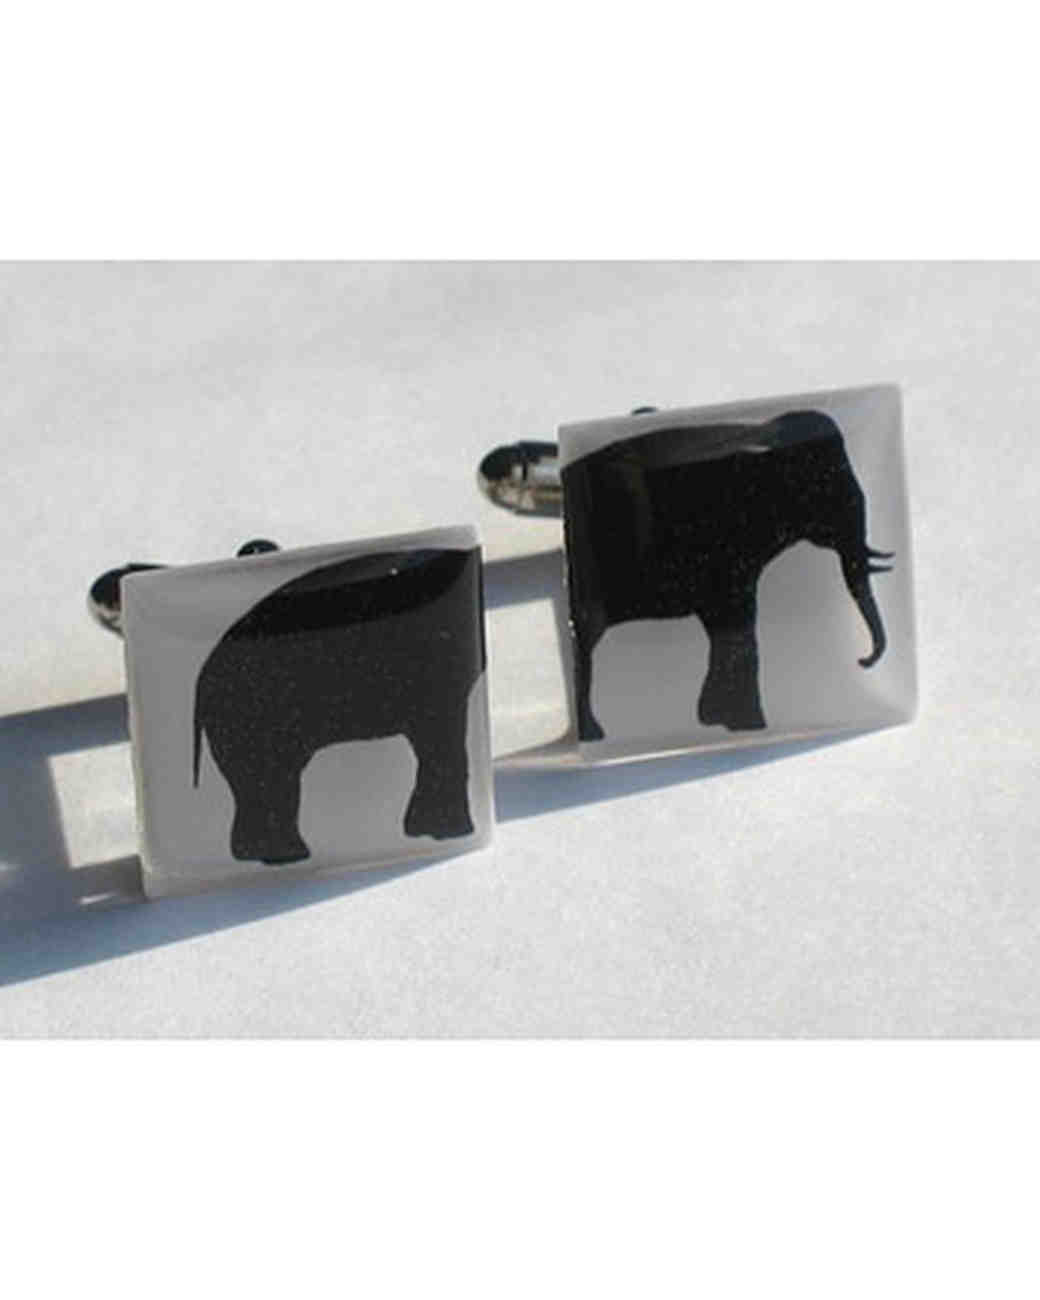 etsy_bella_mode_artist_elephant_cufflinks.jpg